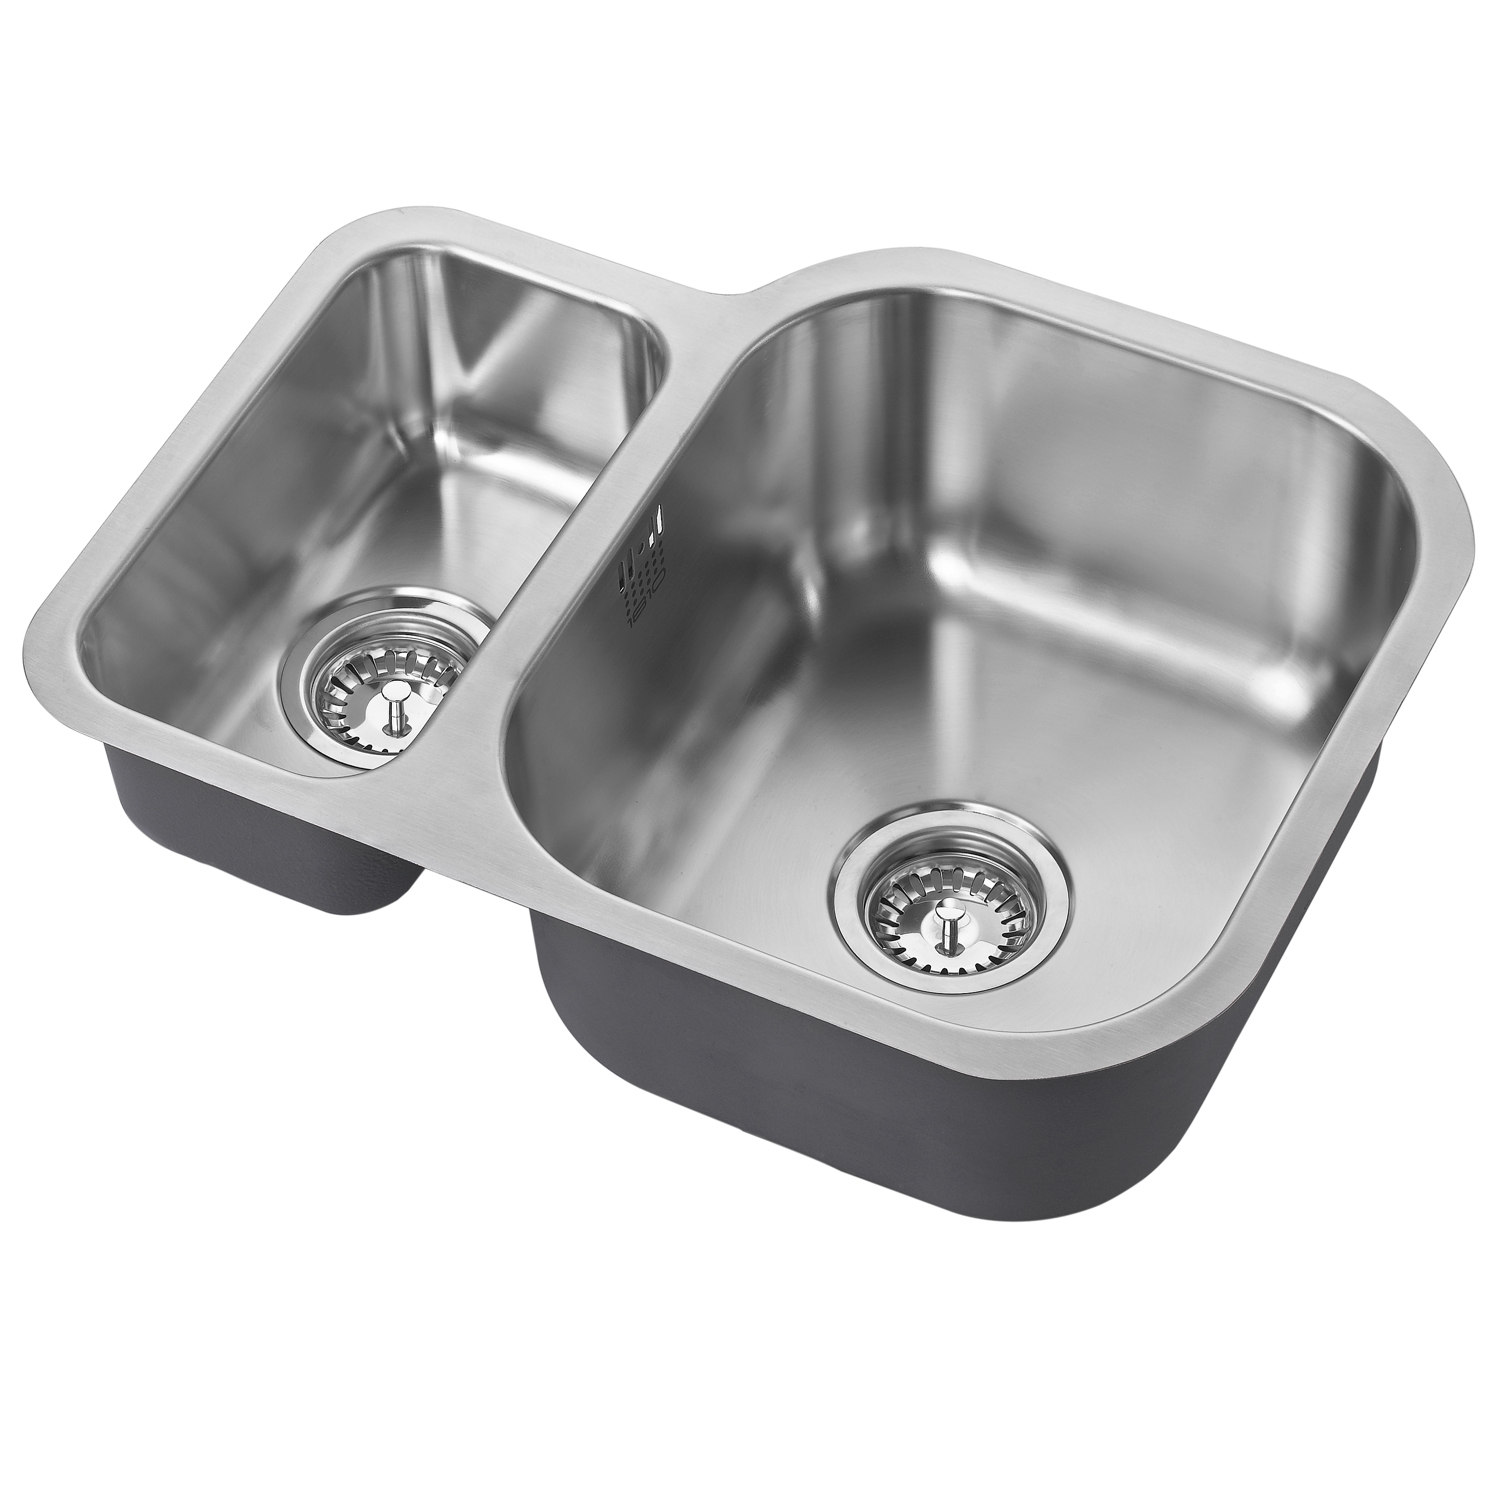 The 1810 Company Etroduo 589/450U 1.5 Bowl Kitchen Sink - Right Handed-0